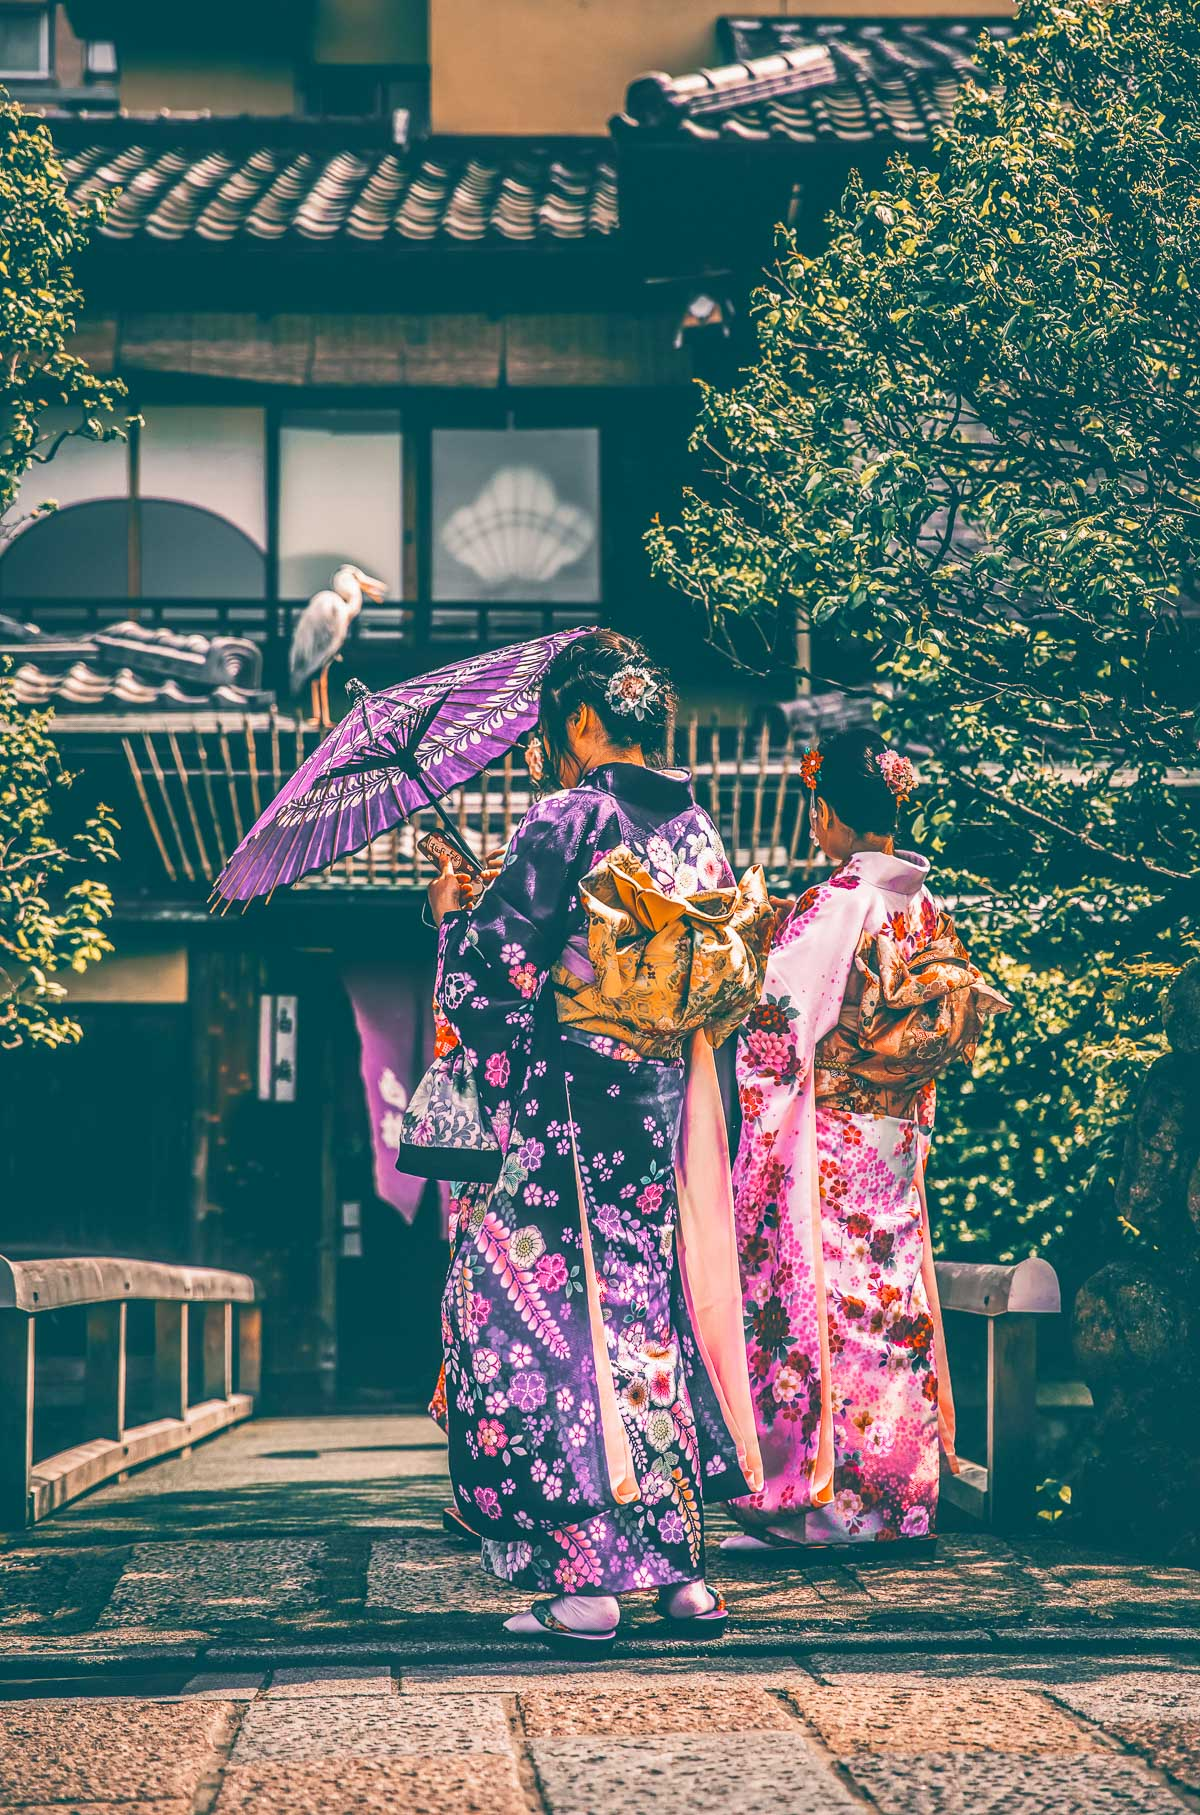 The best places to visit near Tokyo, by travel blogger What The Fab